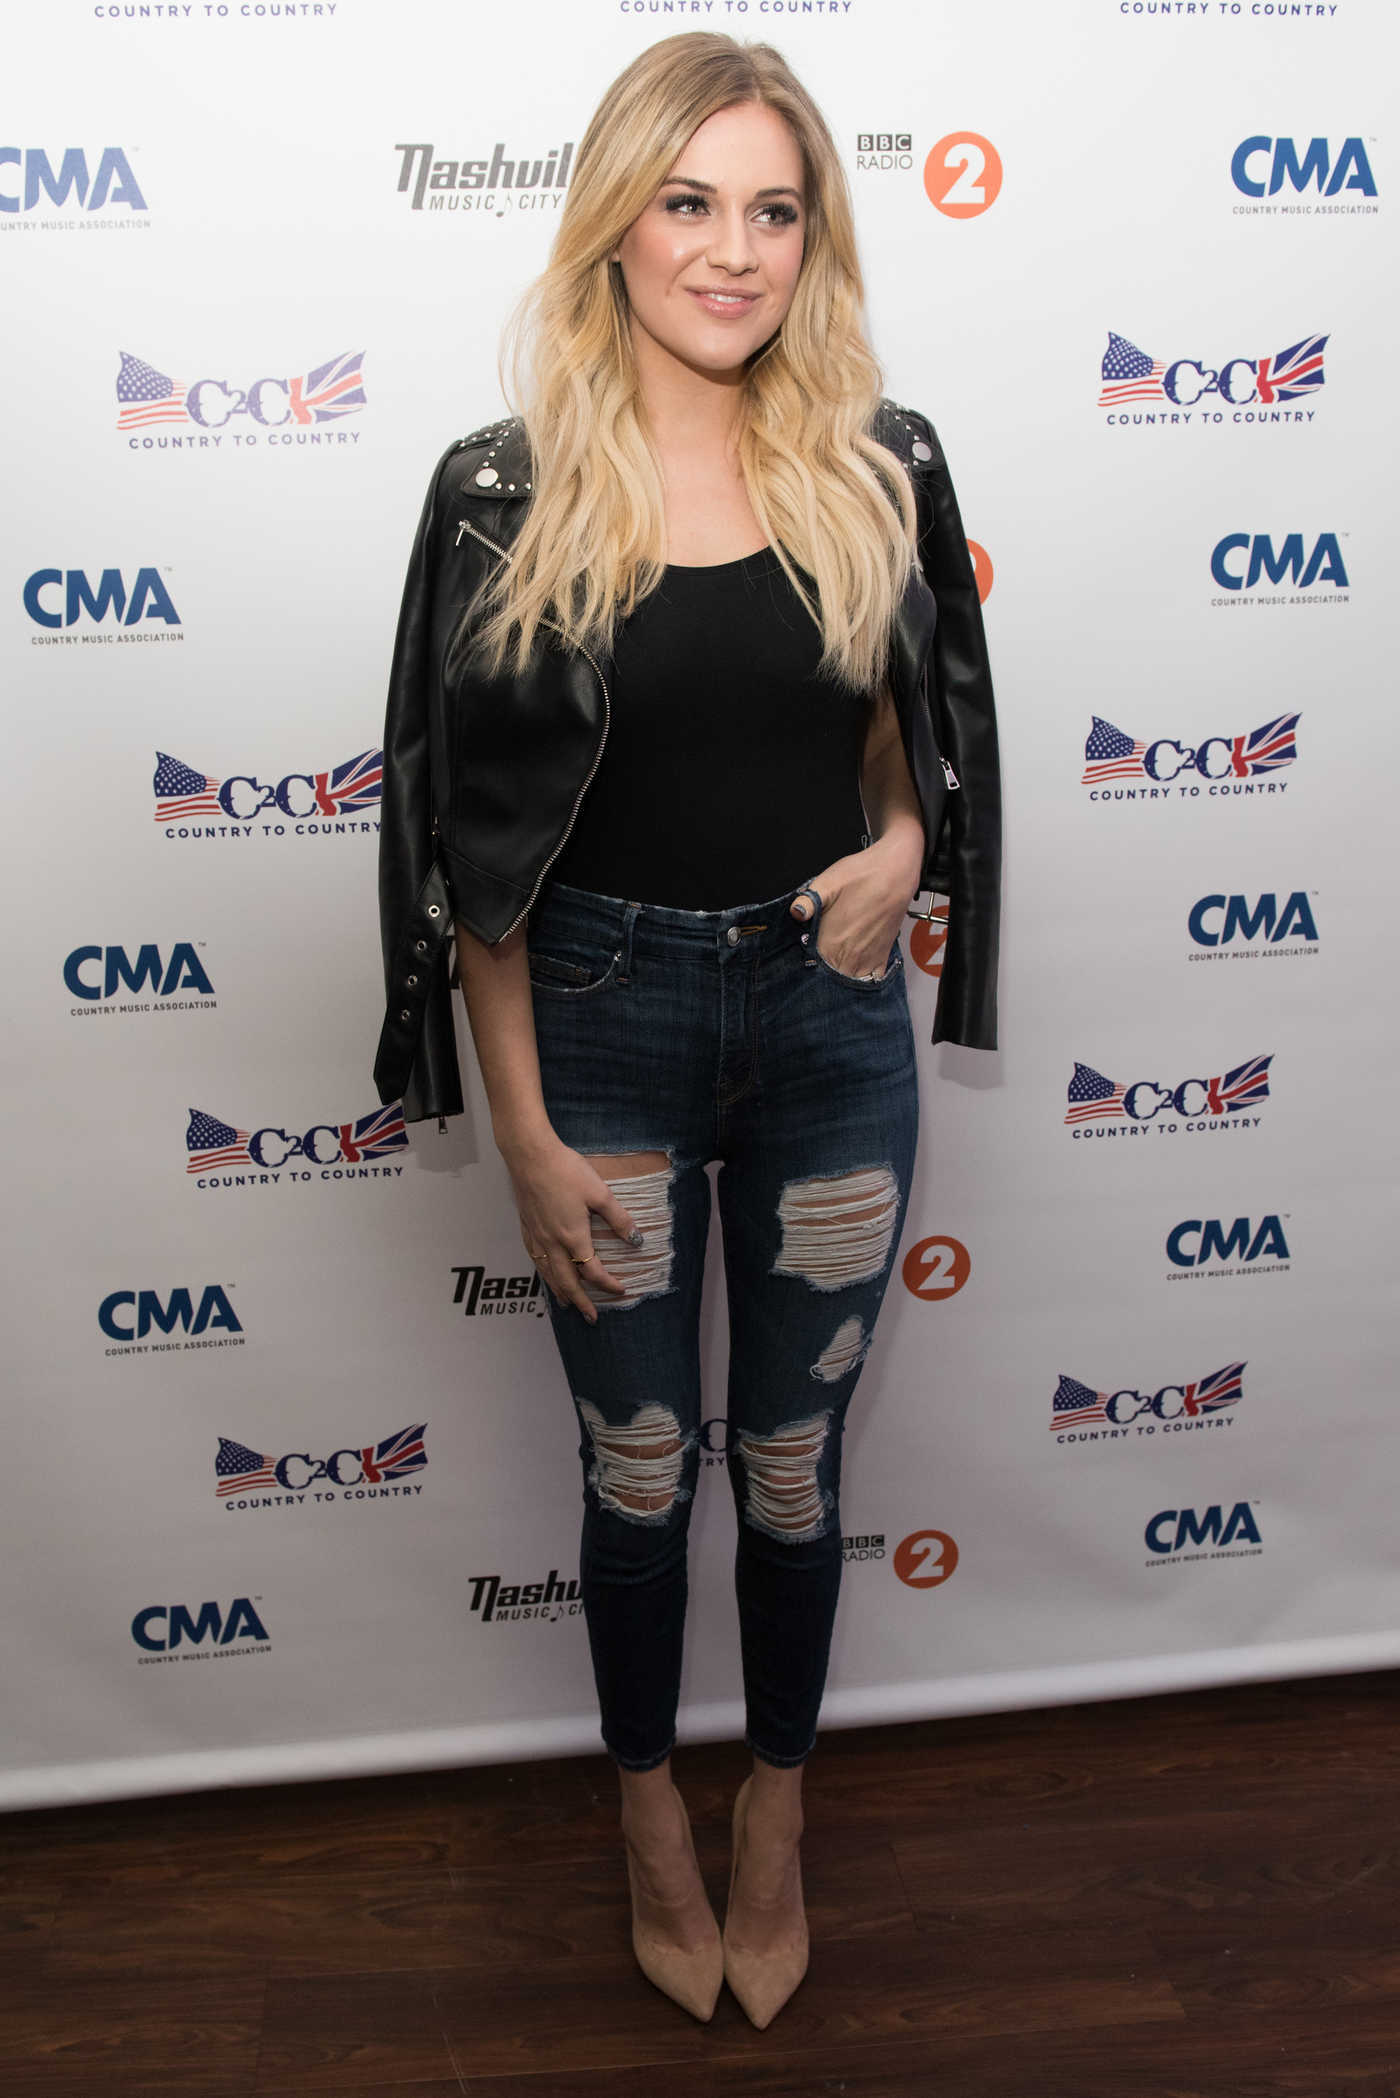 Kelsea Ballerini at the C2C Country to Country Festival at the O2 Arena in London 03/09/2018